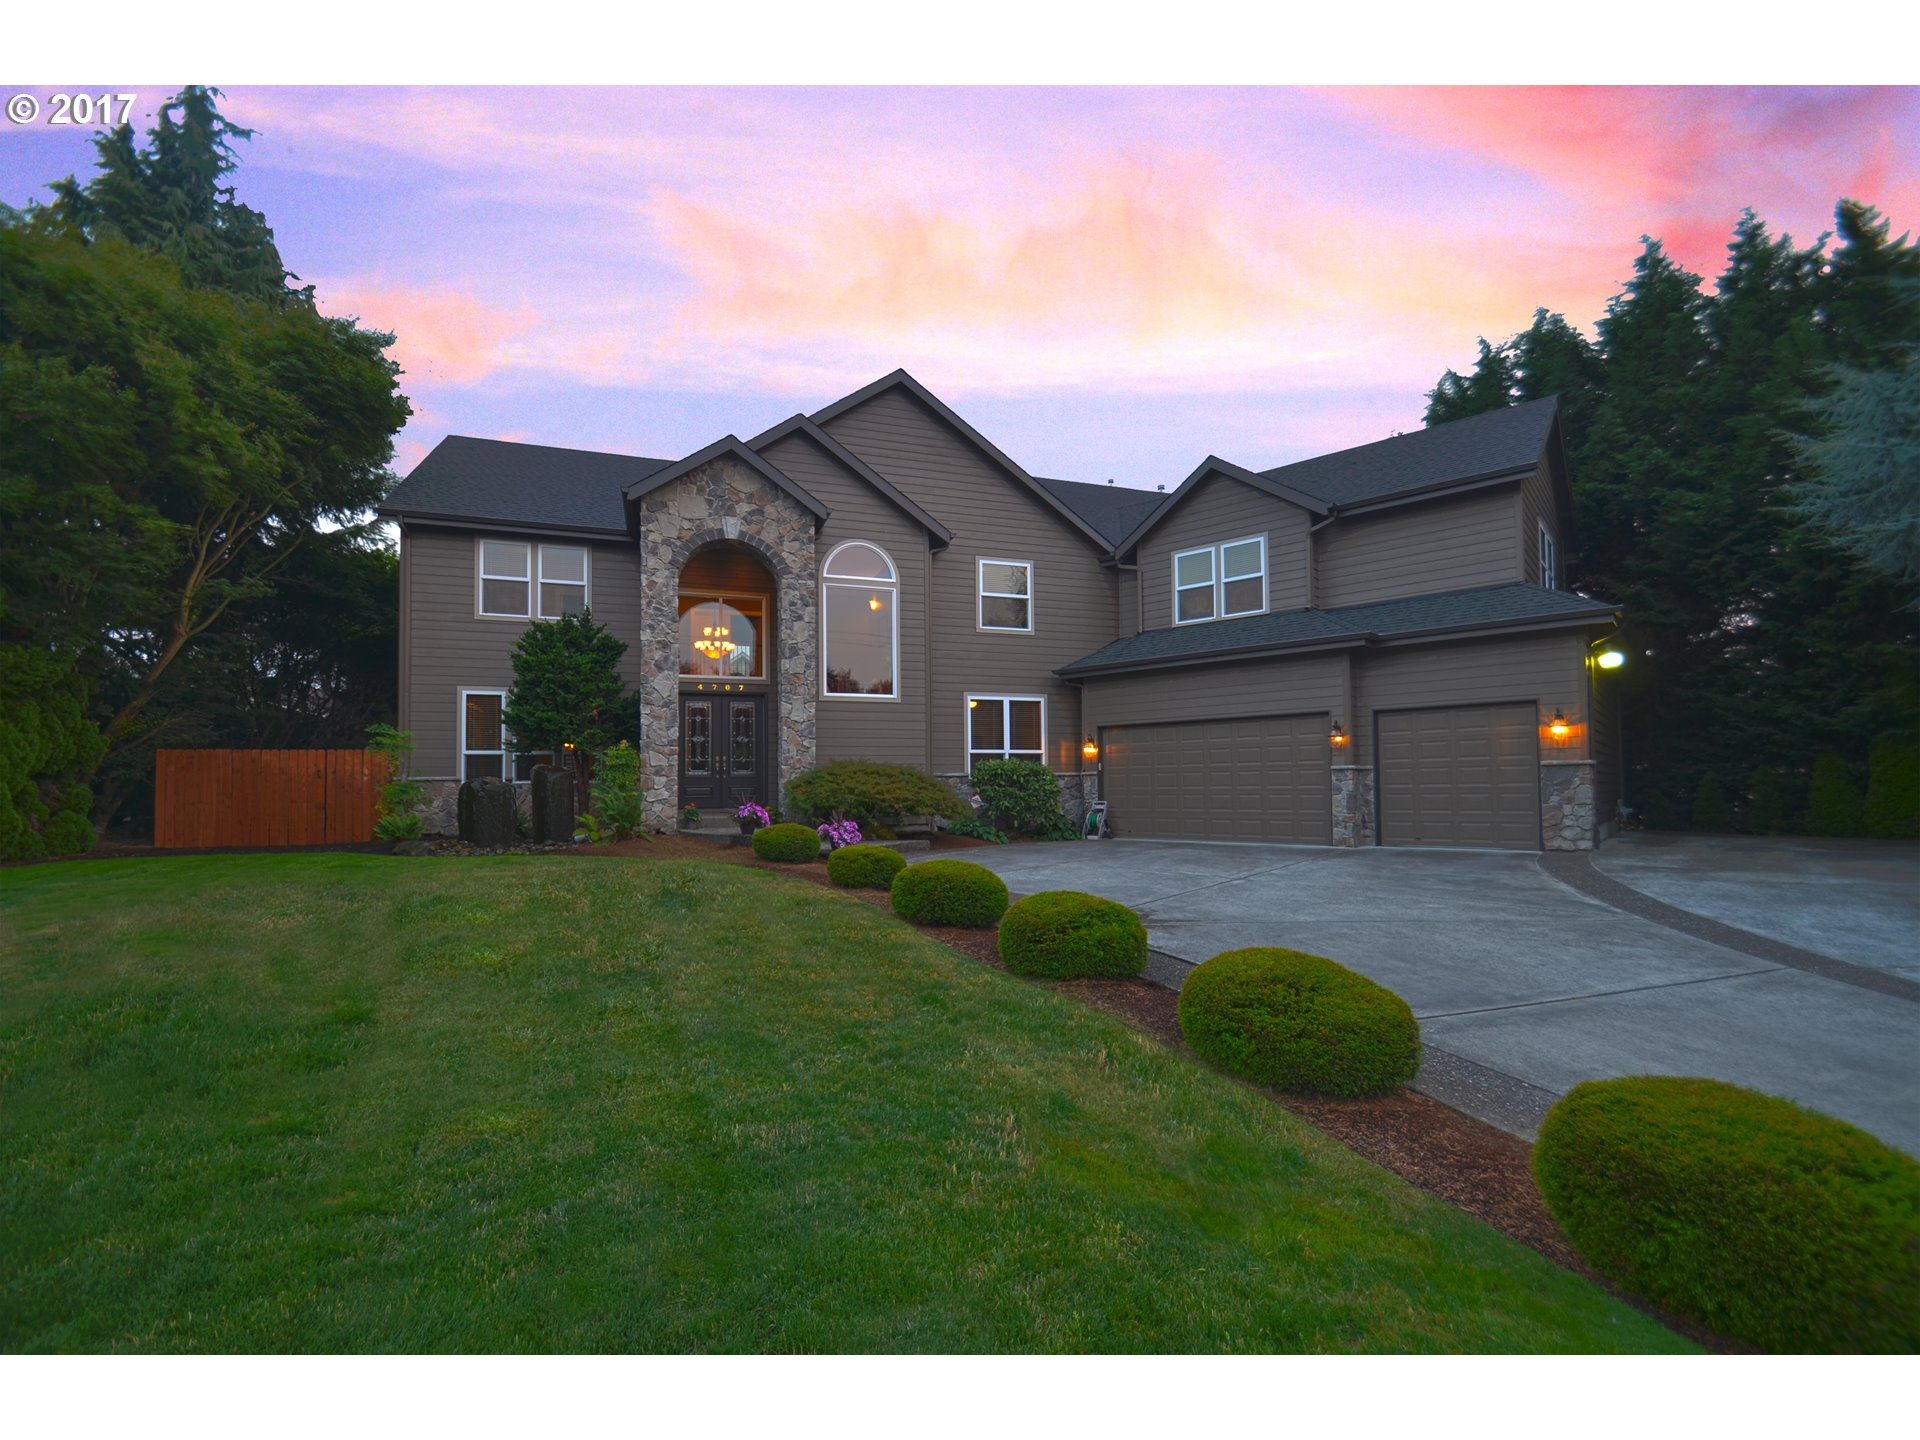 4707 NW 127TH ST, Vancouver, WA 98685